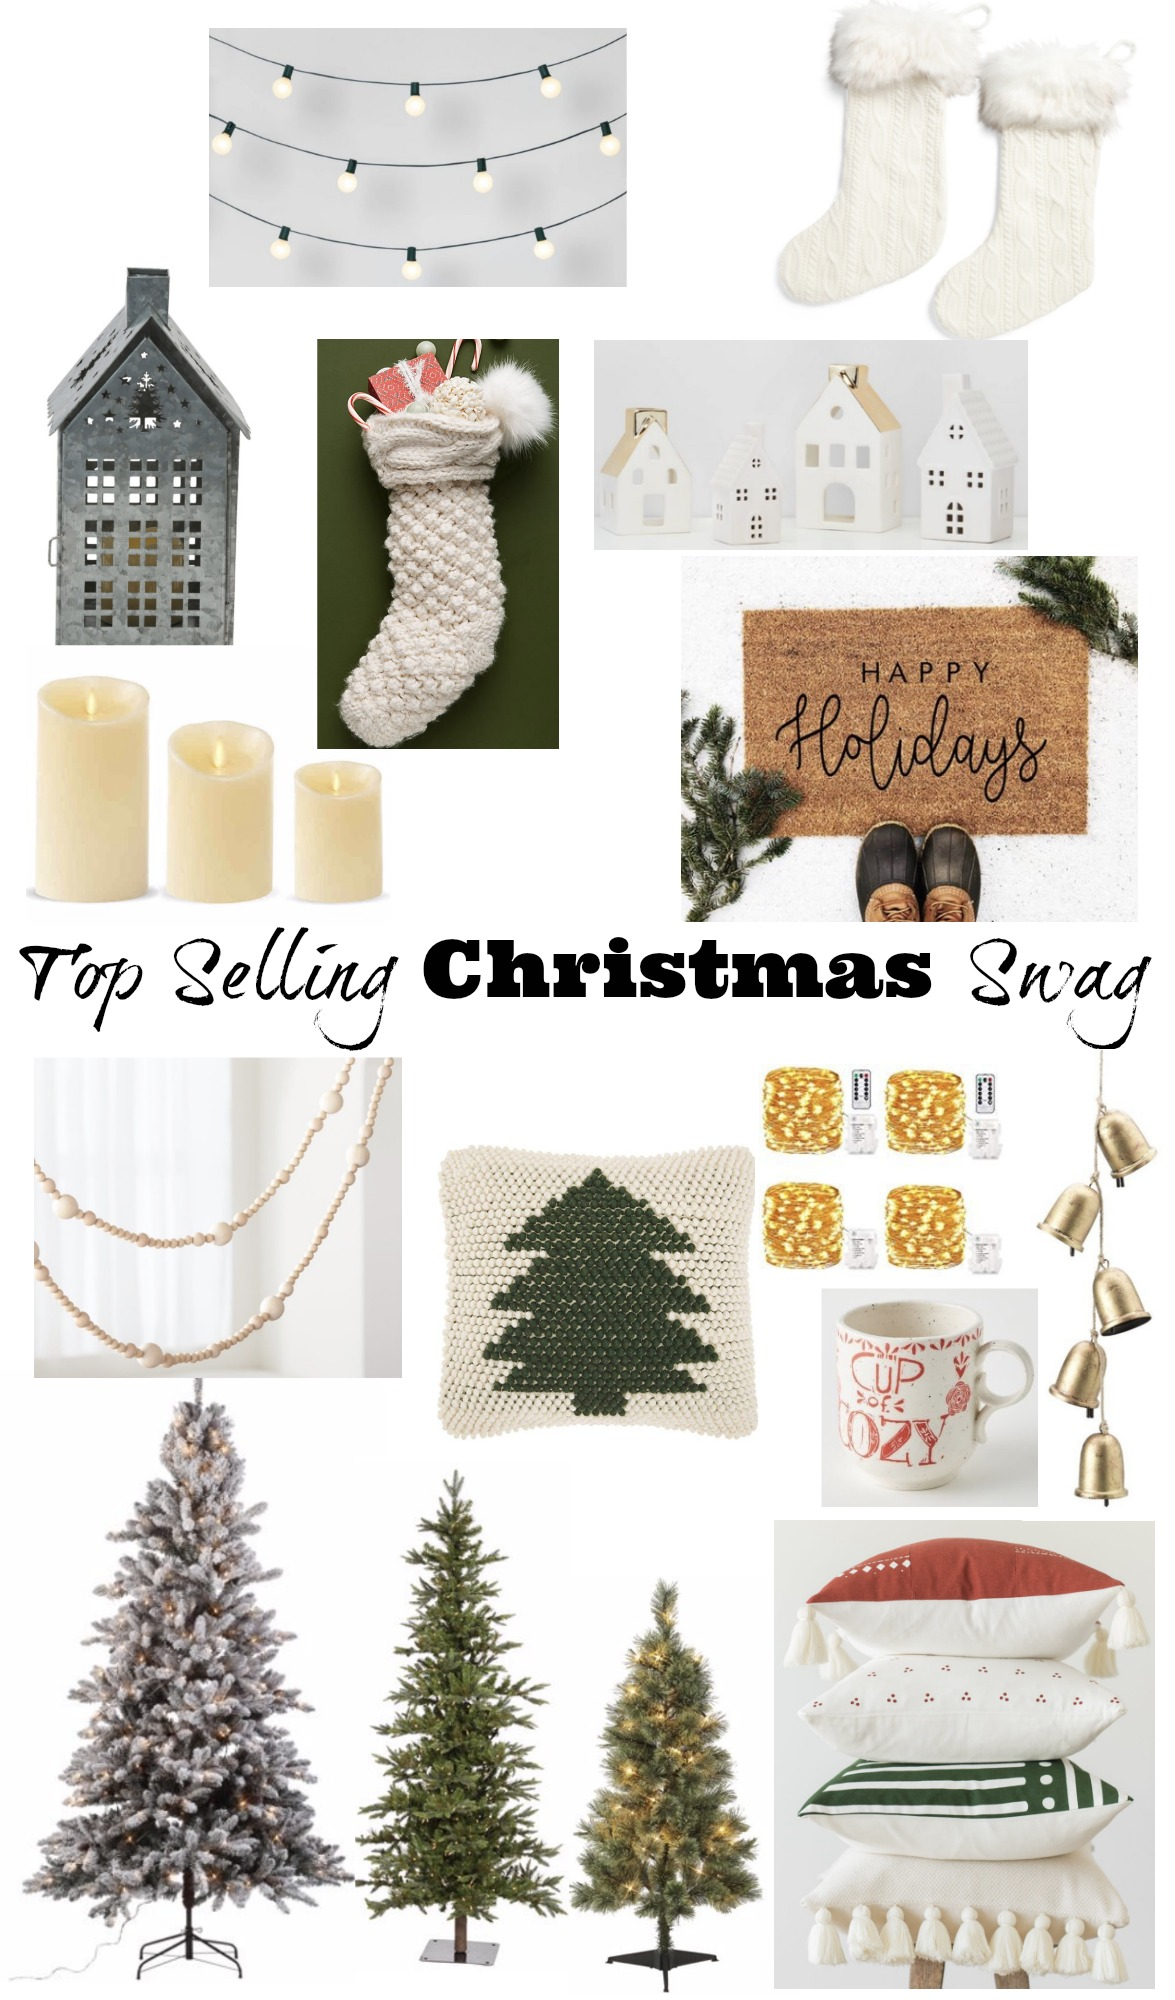 Top Selling Christmas Swag